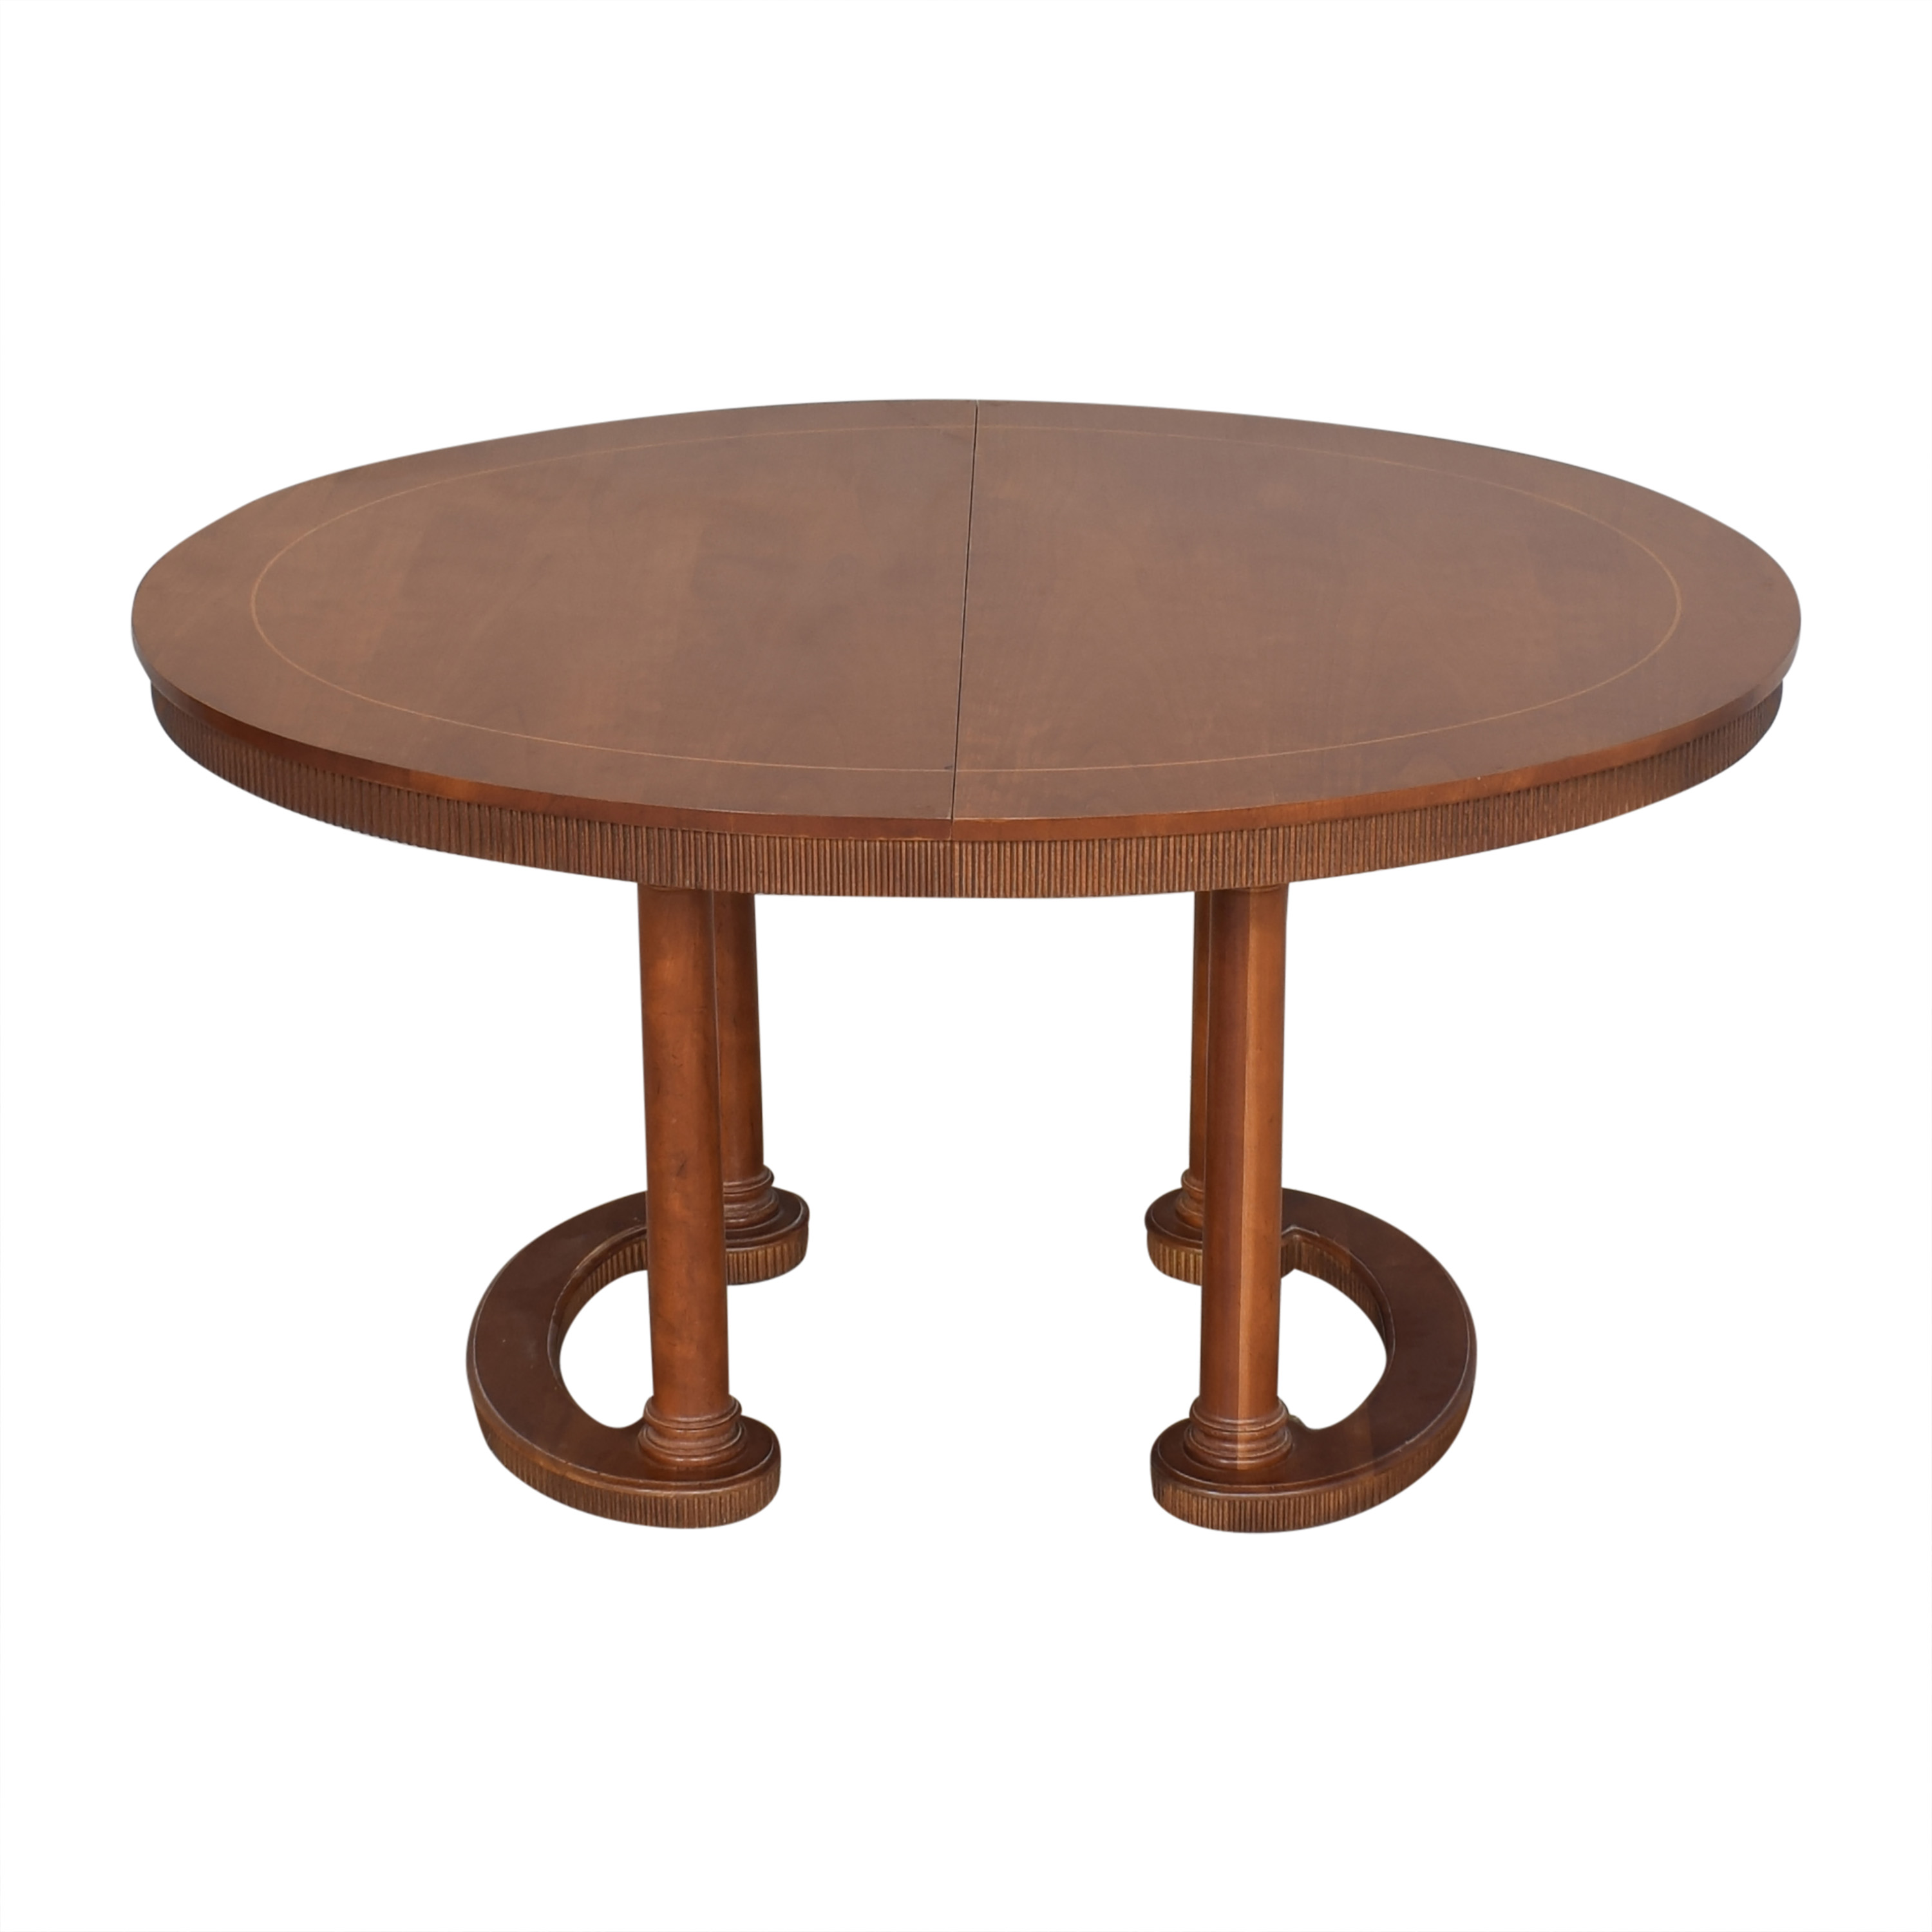 Baker Furniture Baker Furniture Oval Extendable Dining Table dimensions